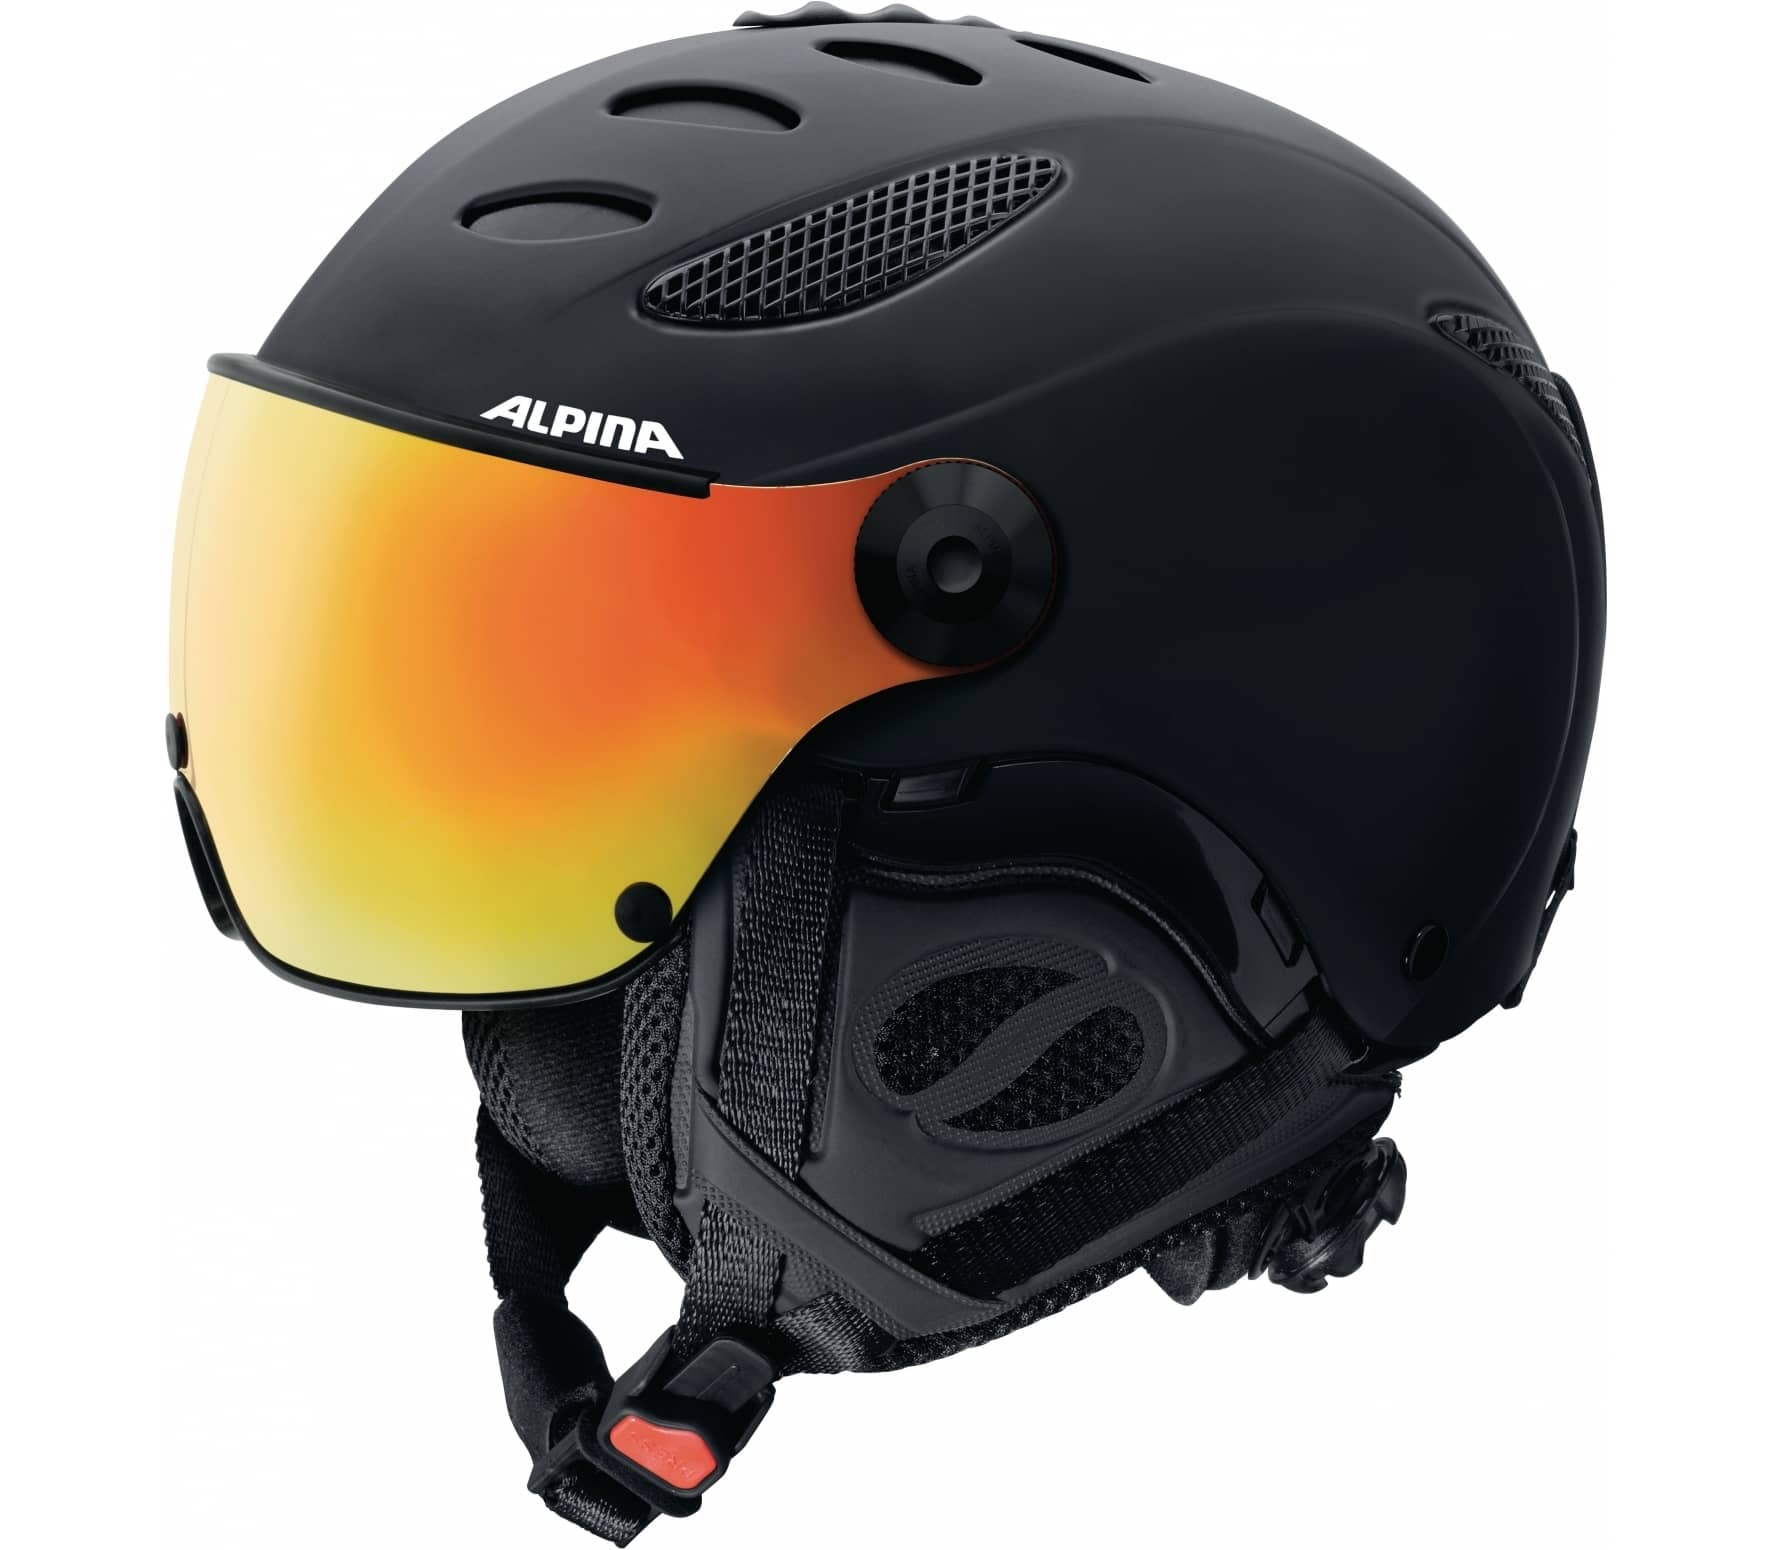 Alpina Jump JV QVMM Unisex Skis Helmet Black Buy It At The - Alpina helmets